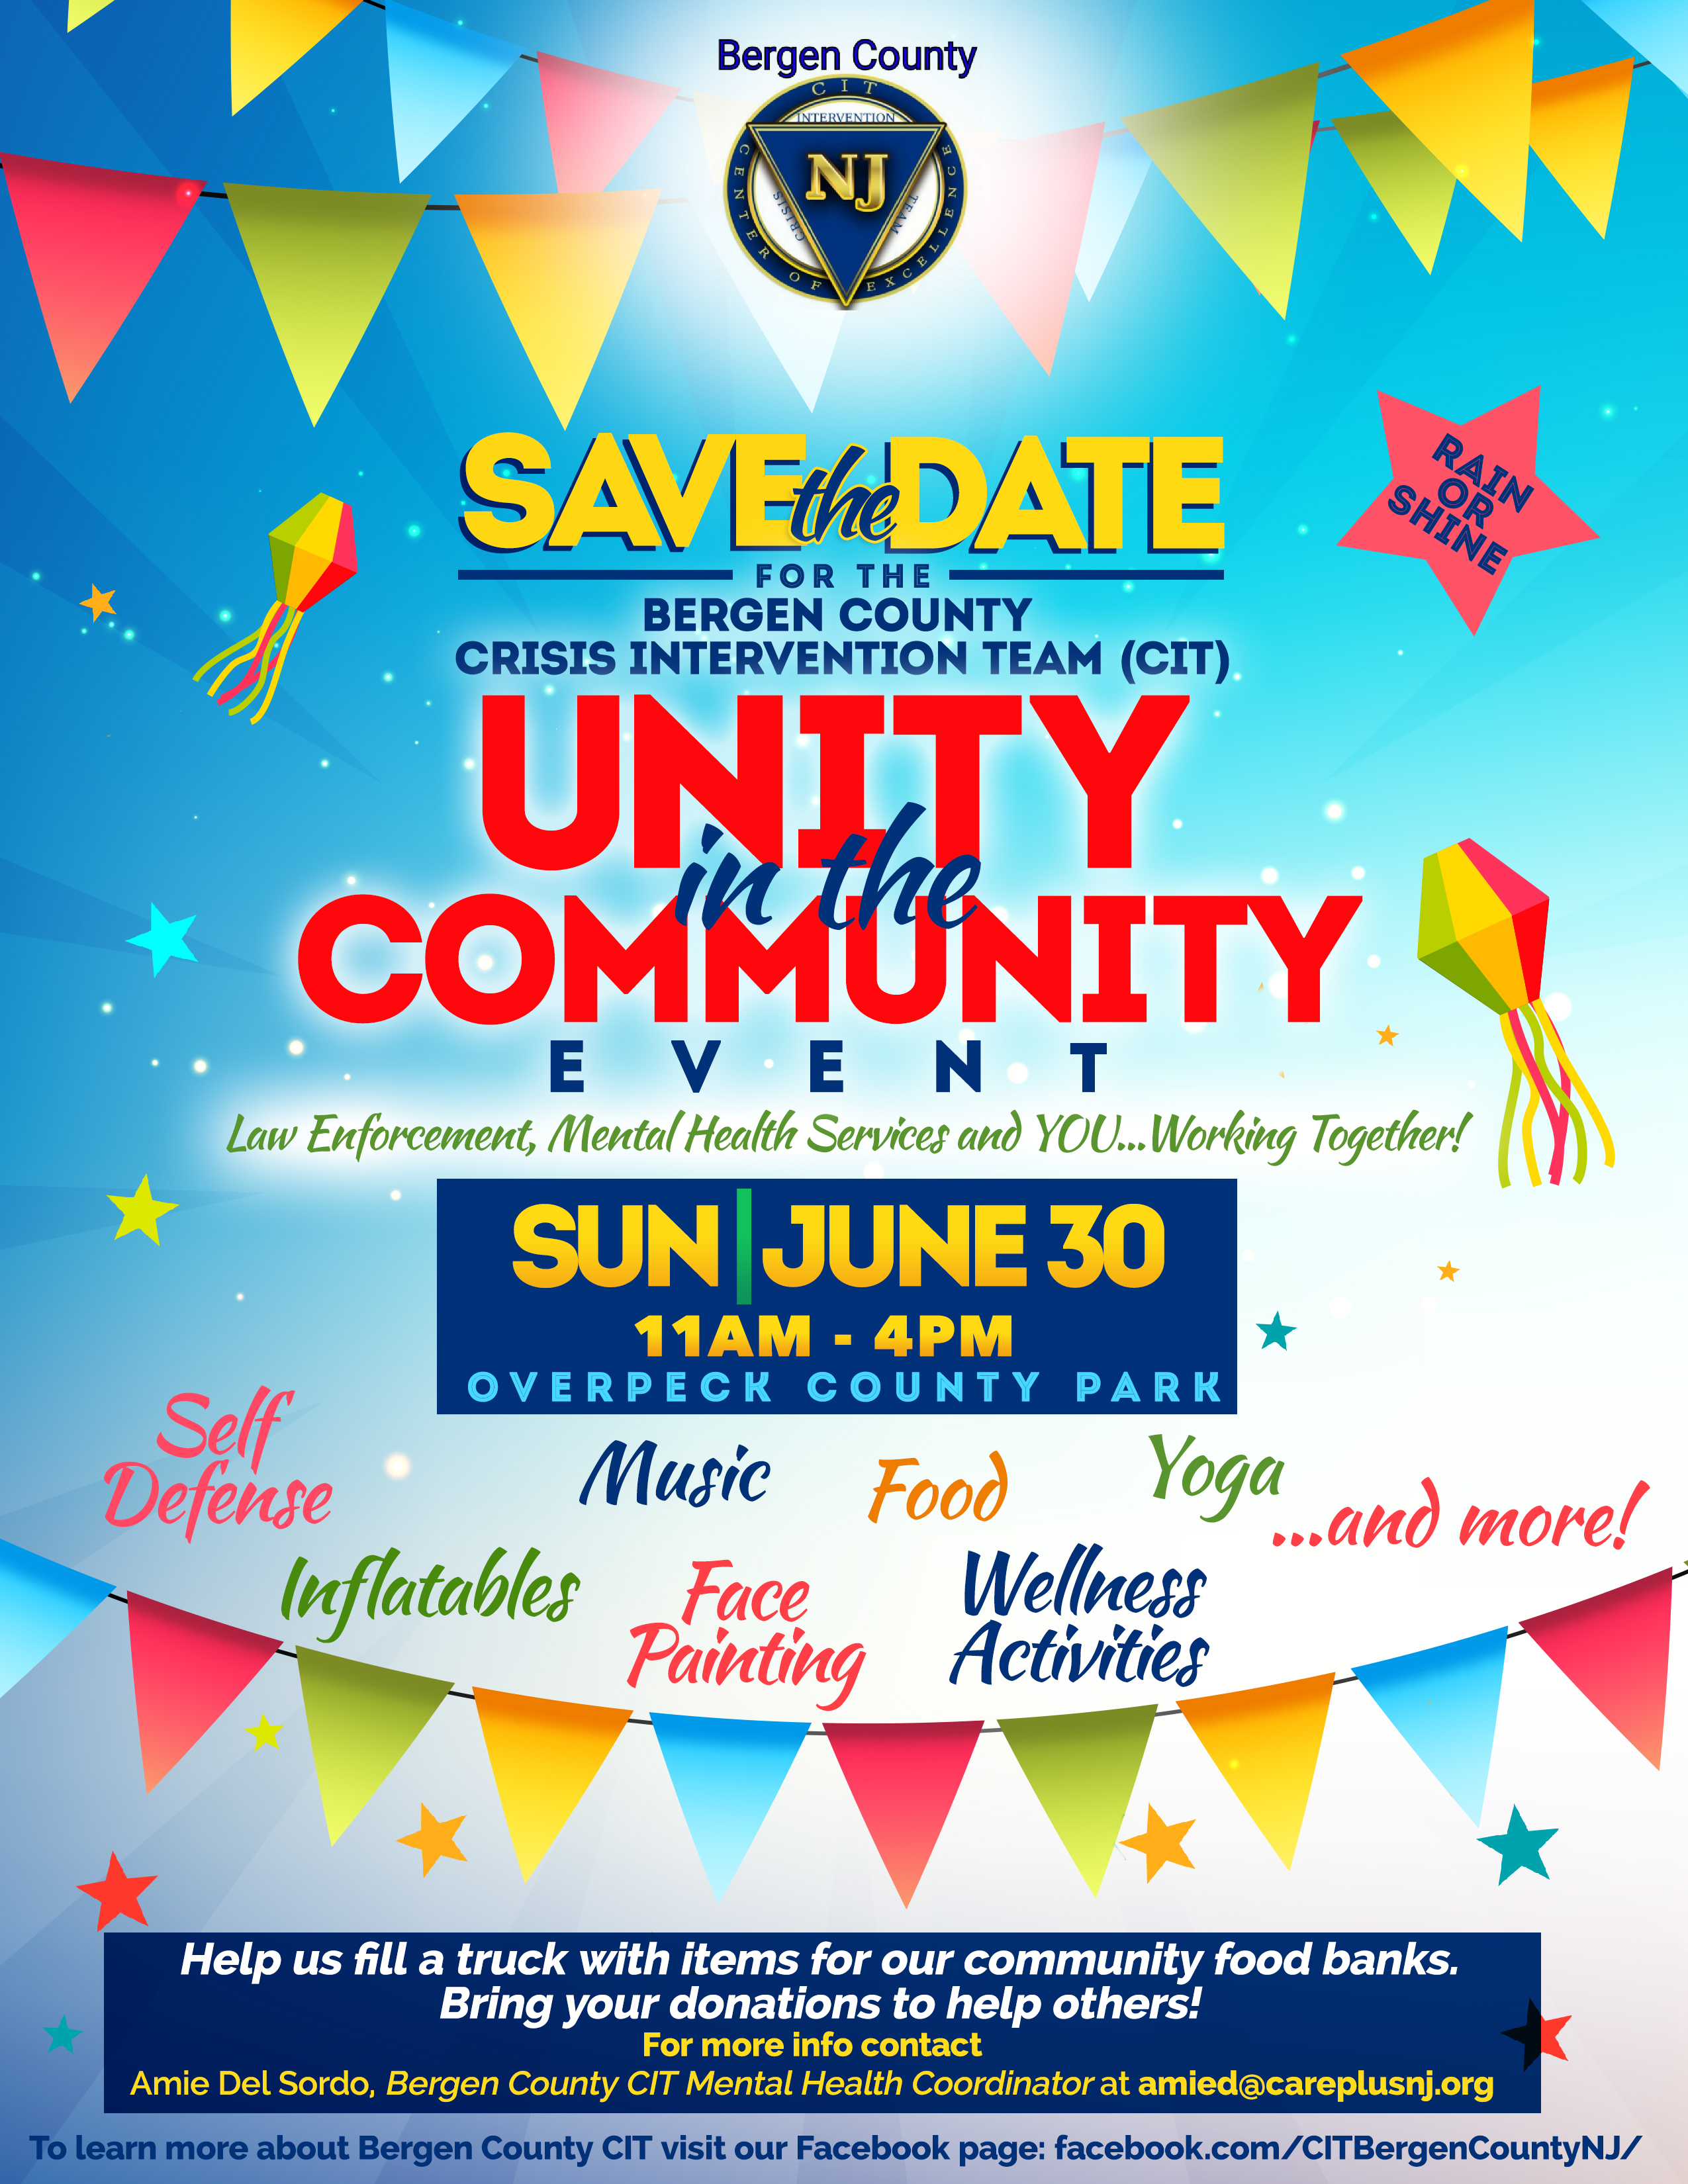 Bergen County CIT Unity in the Community SAVE THE DATE